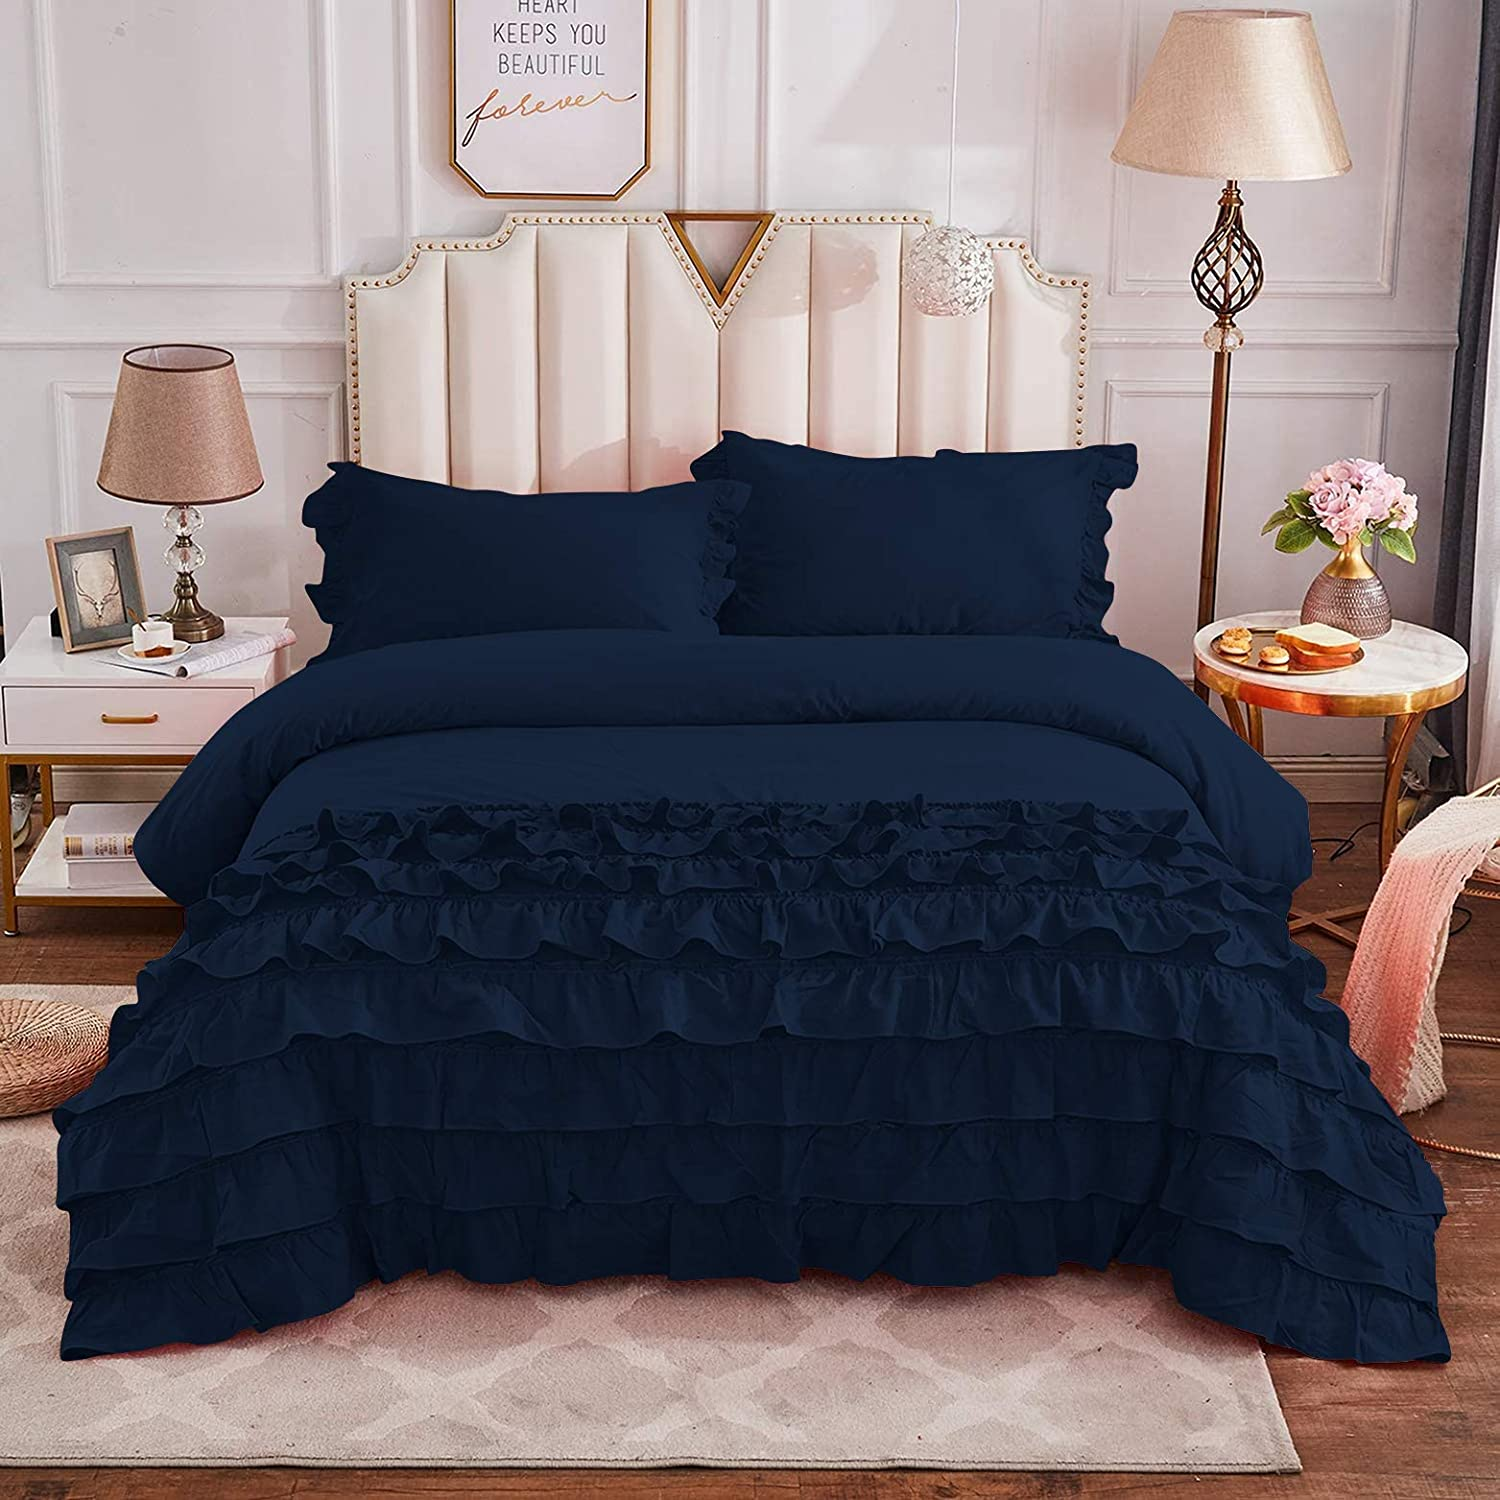 2021 Silver Cotton Full Queen Max 68% OFF Size Ruffled Vintage Bedding Cut Girls